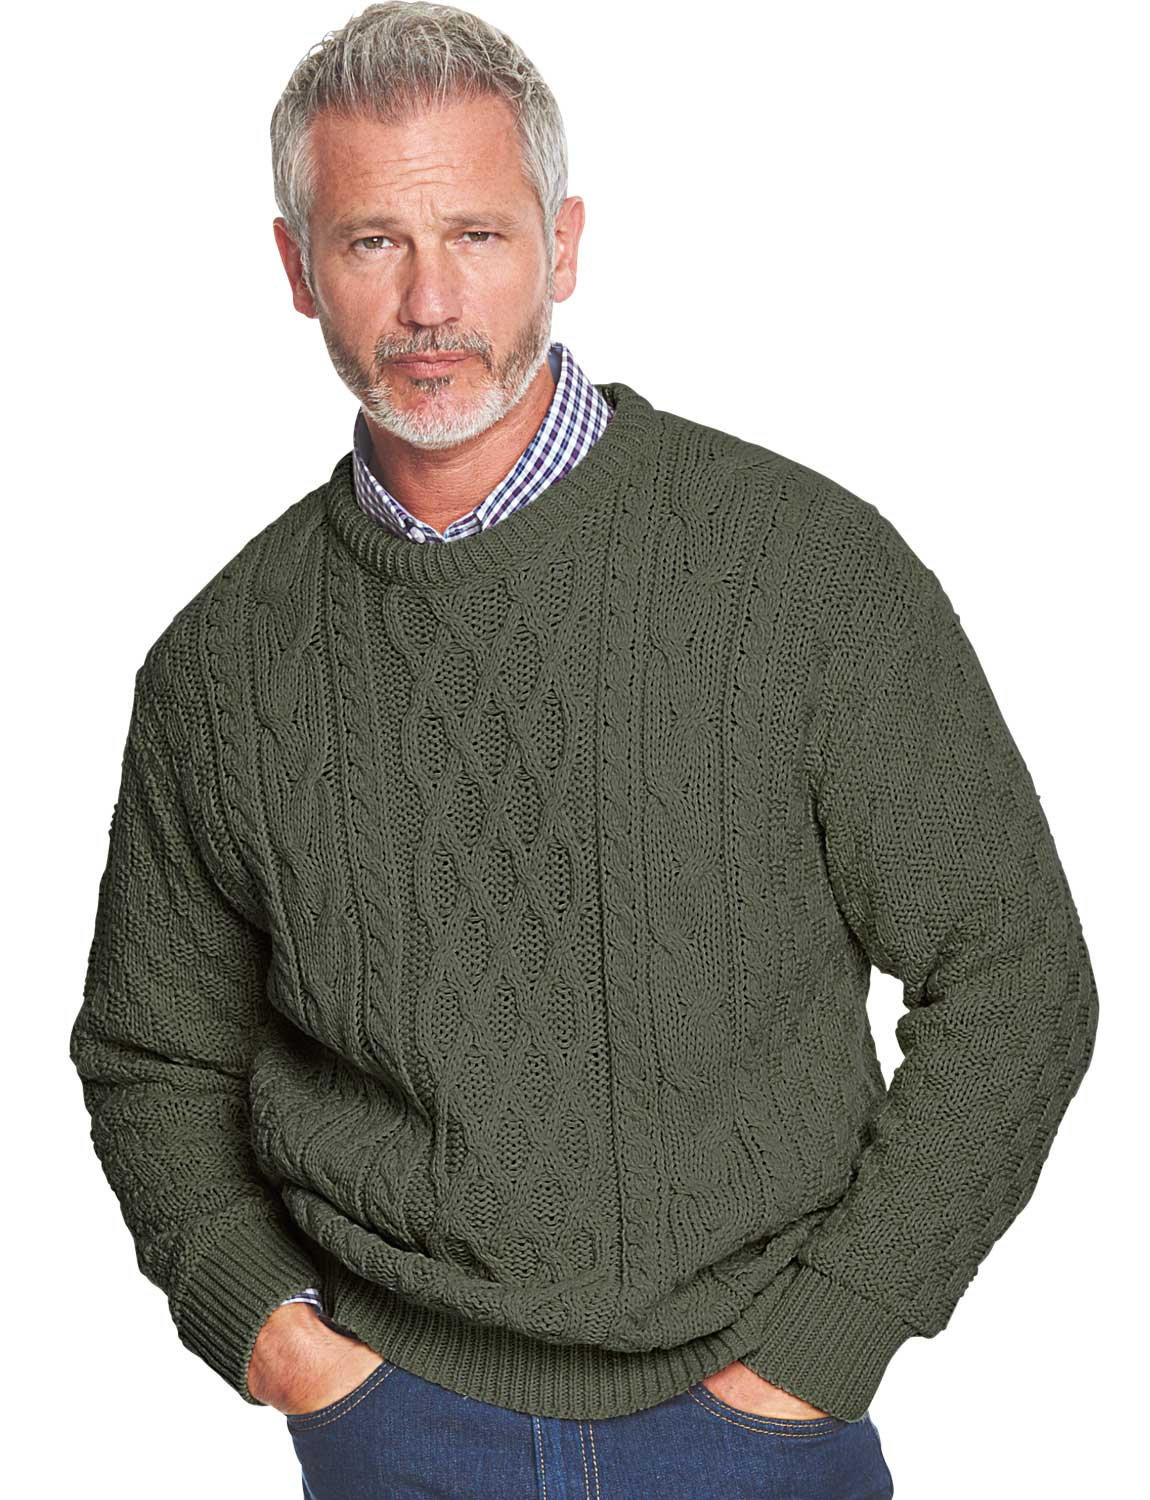 Fisherman Sweaters. Our range of men's aran sweaters offer style, comfort and class. At The Sweater Shop, we have a unique selection of % Irish wool products, from crew neck and v-neck sweaters to men's fisherman's sweaters, aran cardigans and grandfather shirts.